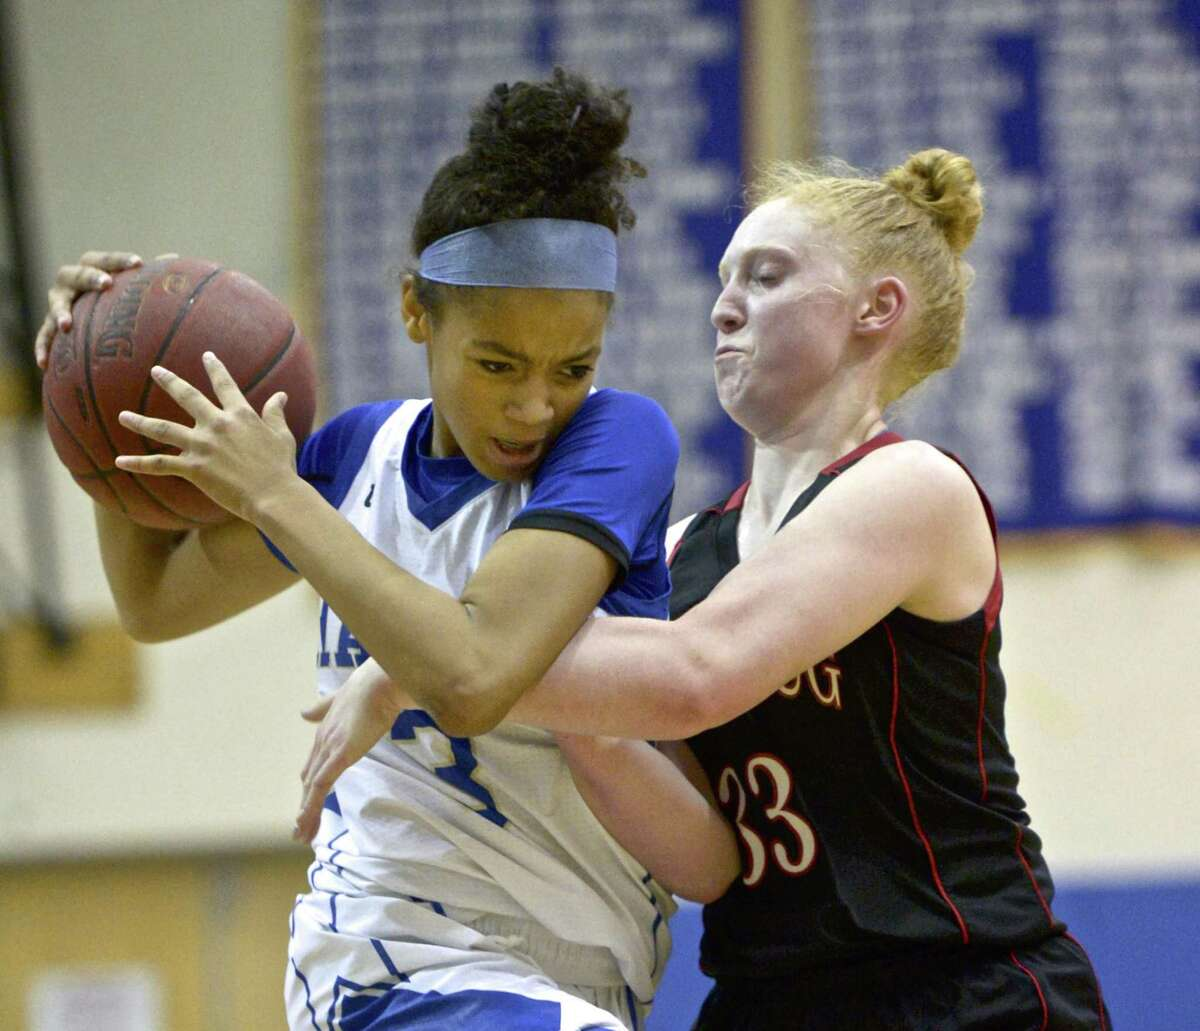 Newtown's Amy Sapenter (3) is fouled by Pomperaug's Maggie Lee (33) as she drives to the basket in the girls basketball game between Pomperaug and Newtown high schools, Tuesday night, January 8, 2019, at Newtown High School, Newtown, Conn.